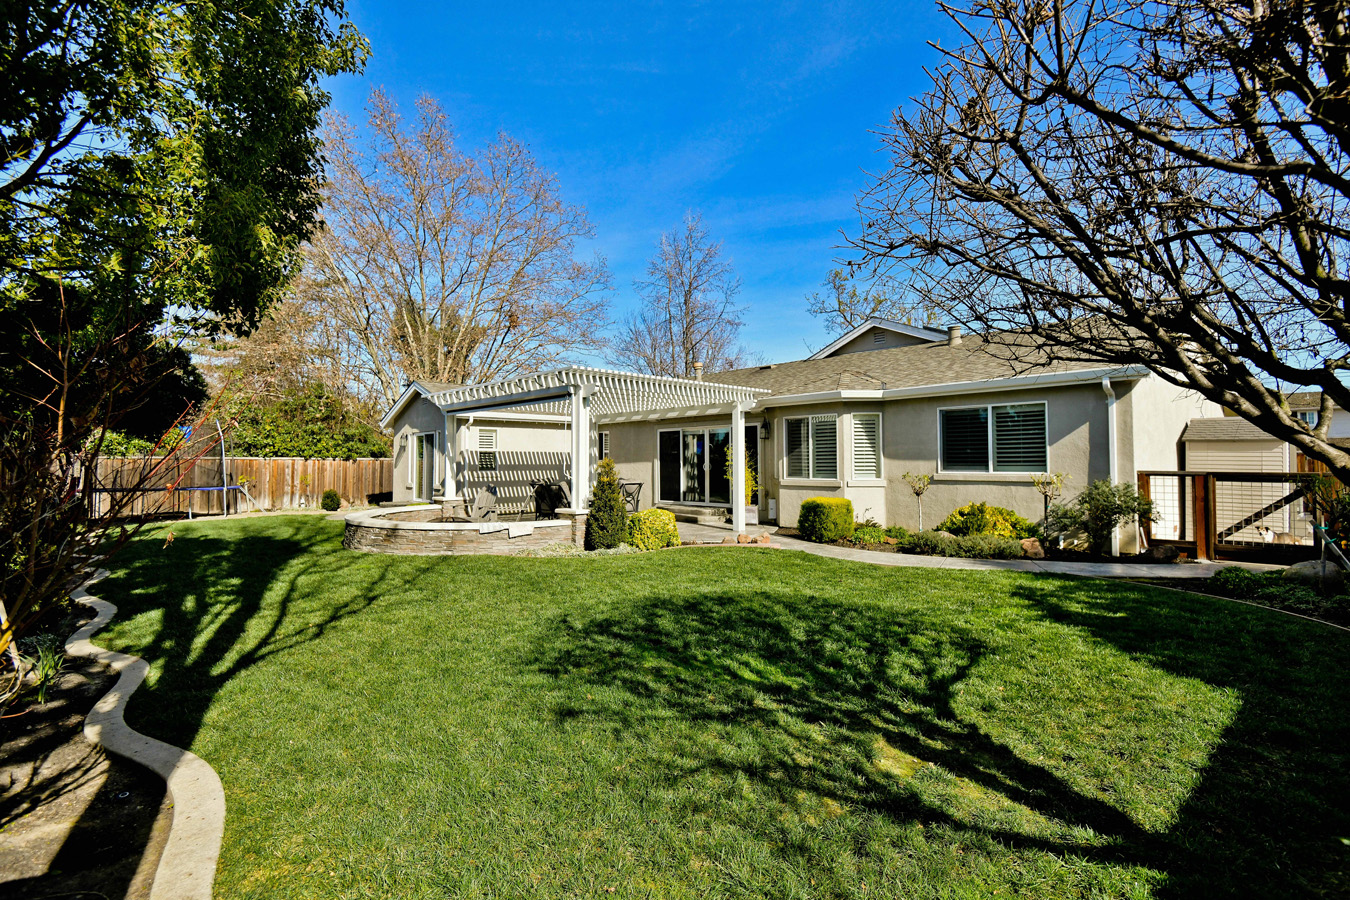 211 Las Lomas Way, Walnut Creek, CA 94598